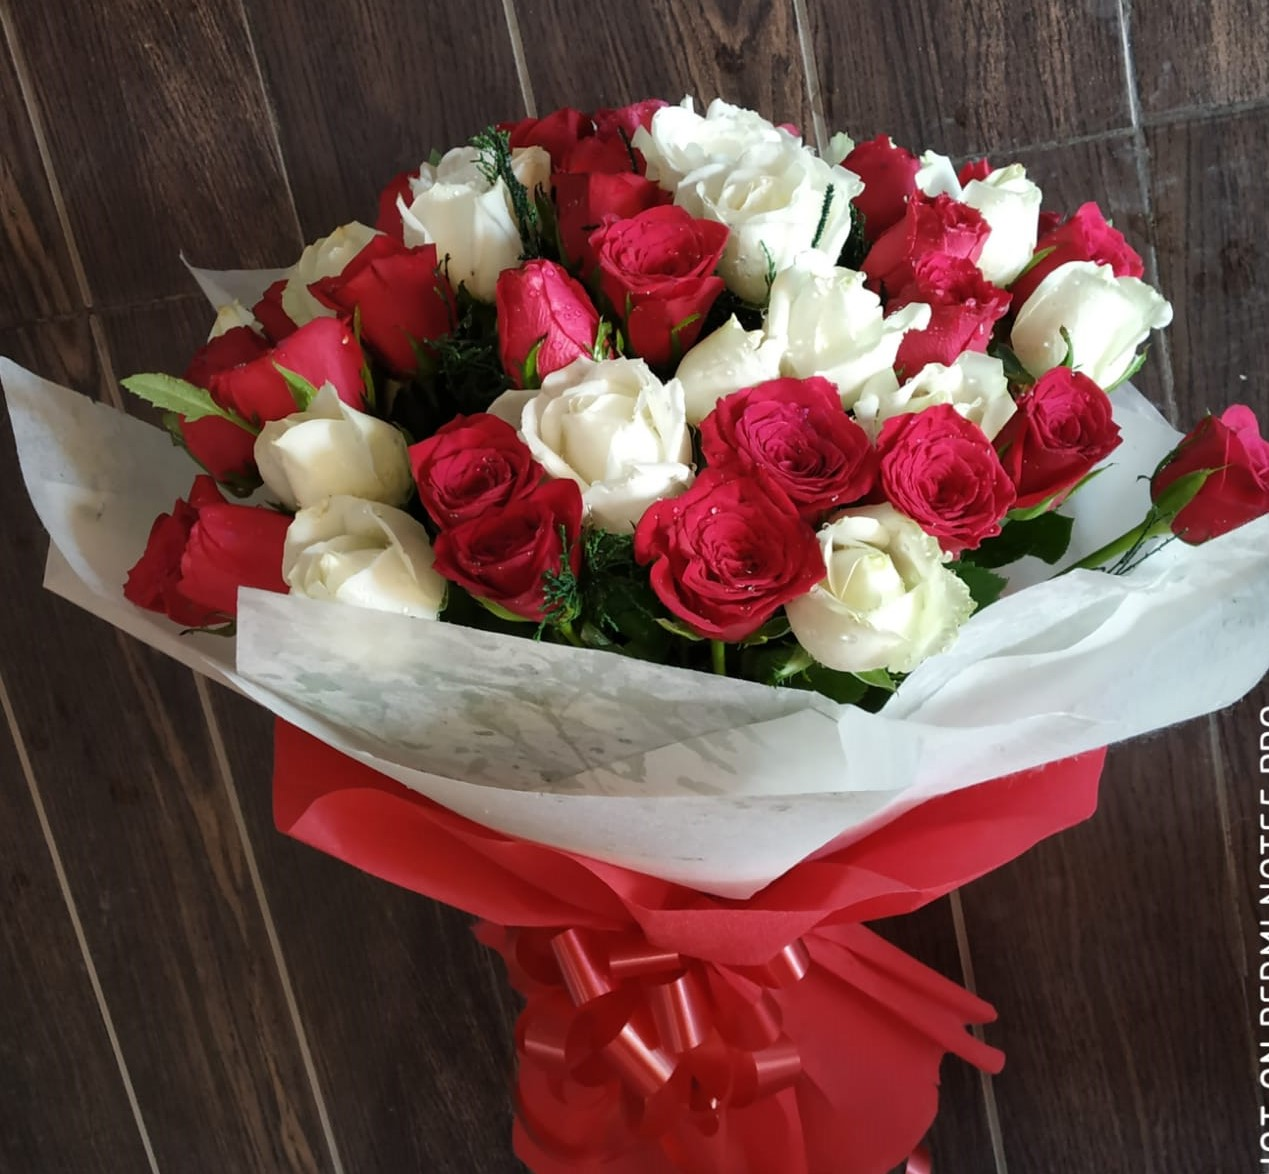 send flower Govindpuri DelhiRed & White Roses in Duble Layer Packing